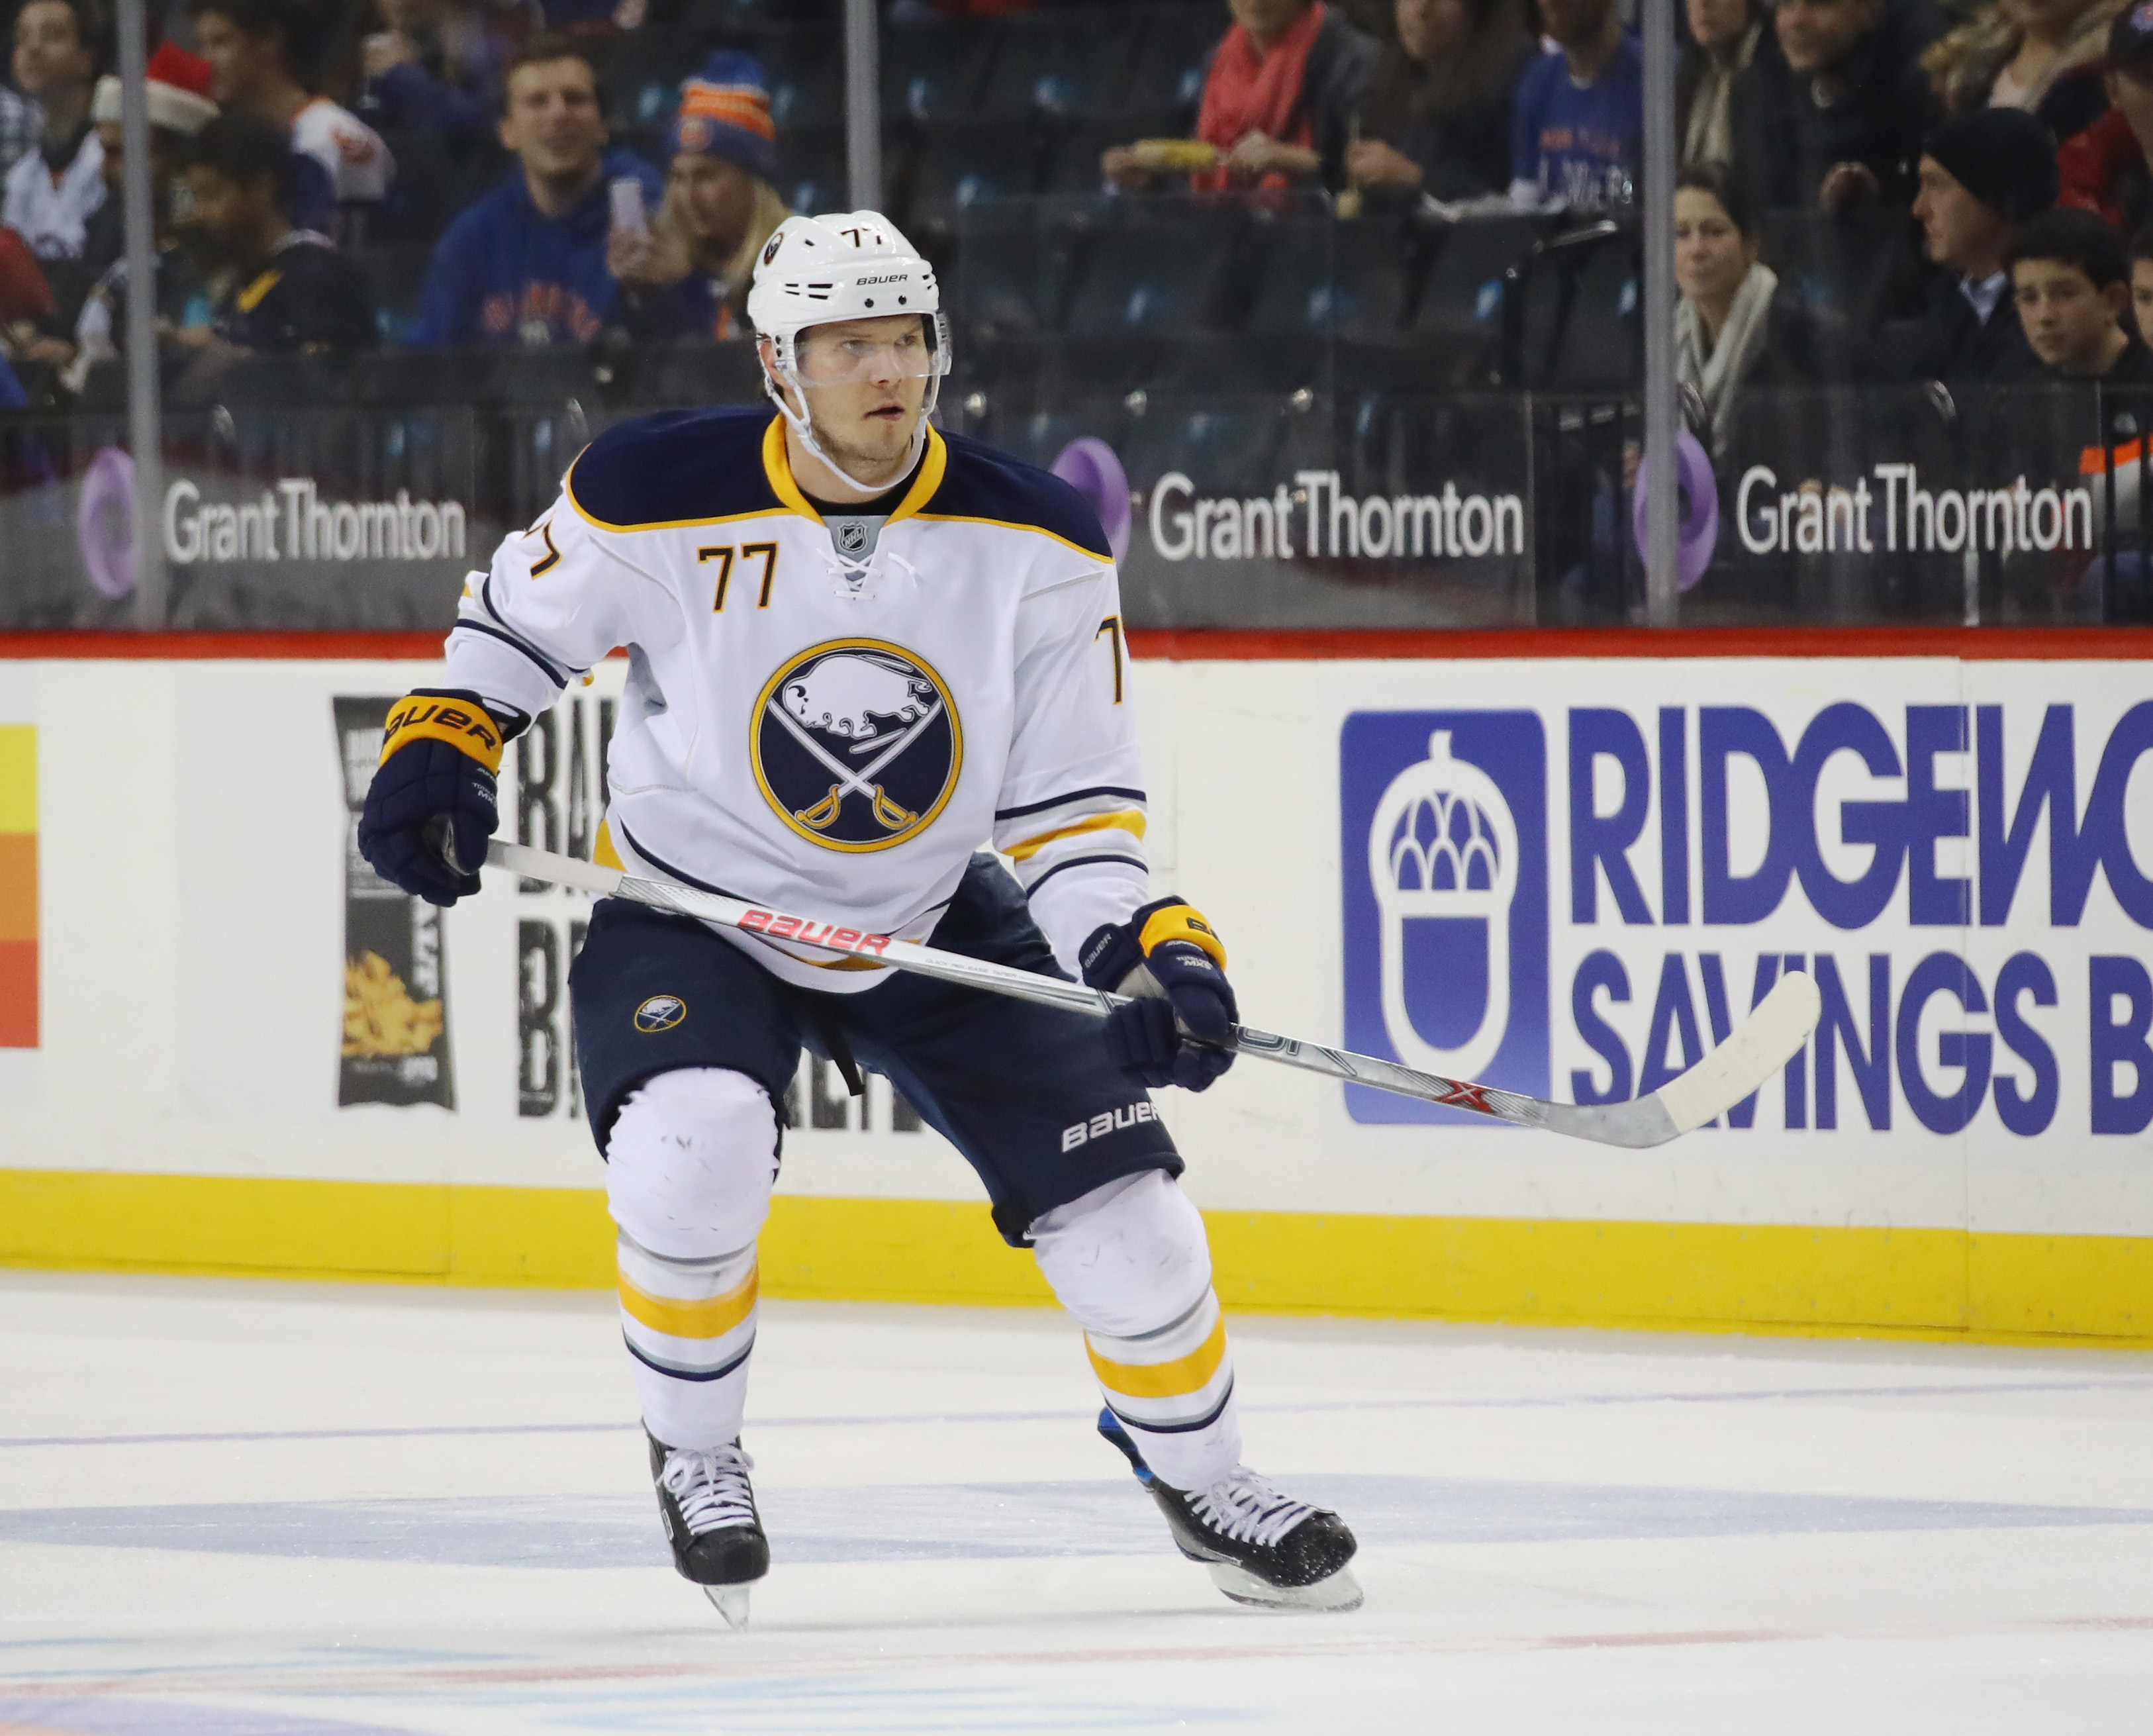 A lingering injury has prevented Dmitry Kulikov from making a difference for the Sabres. (Getty Images)